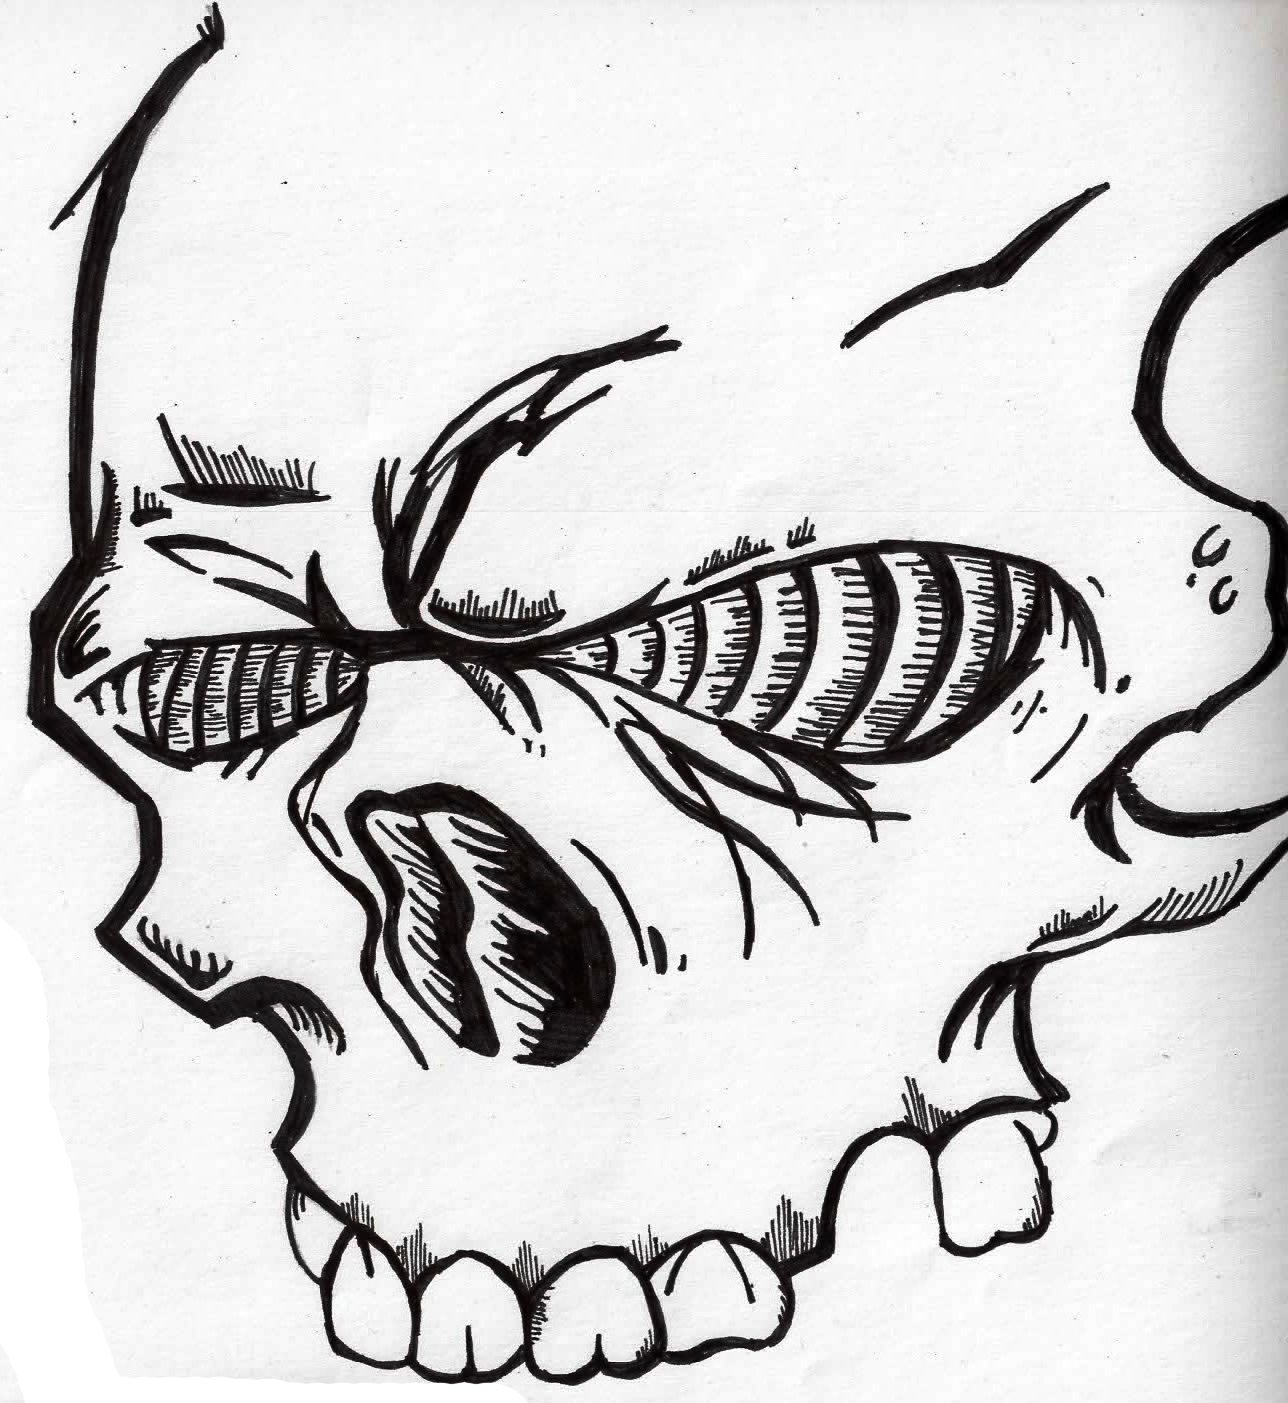 1288x1403 Graffiti Skull Drawings Skulls Drawing Graffiti How To Draw